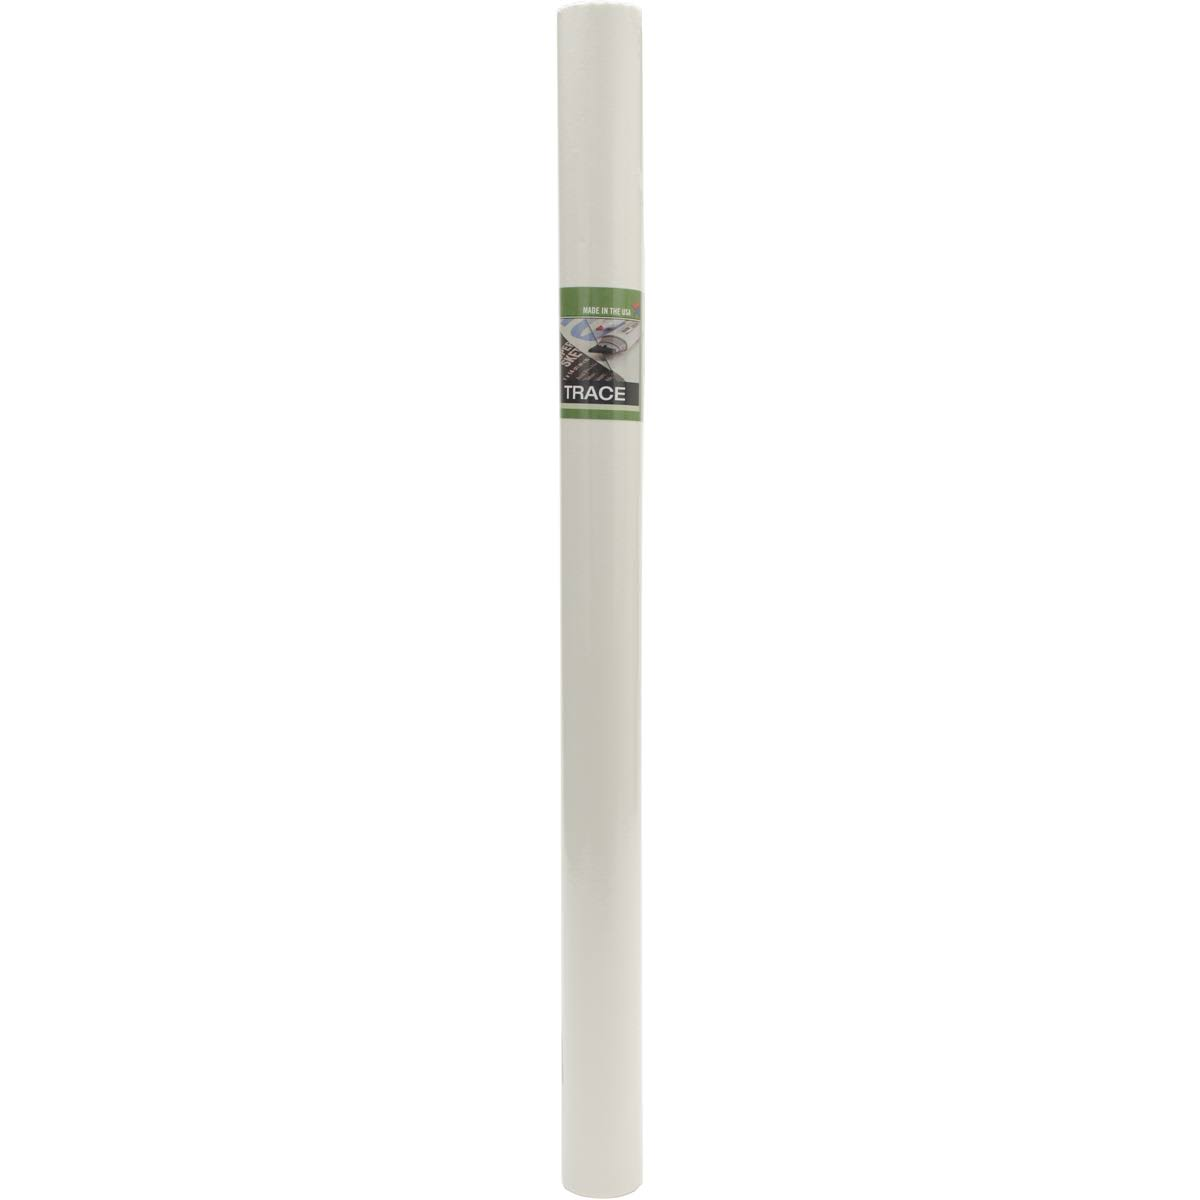 "Pro Art Trace Paper Roll - White, 24"" x 20yds"